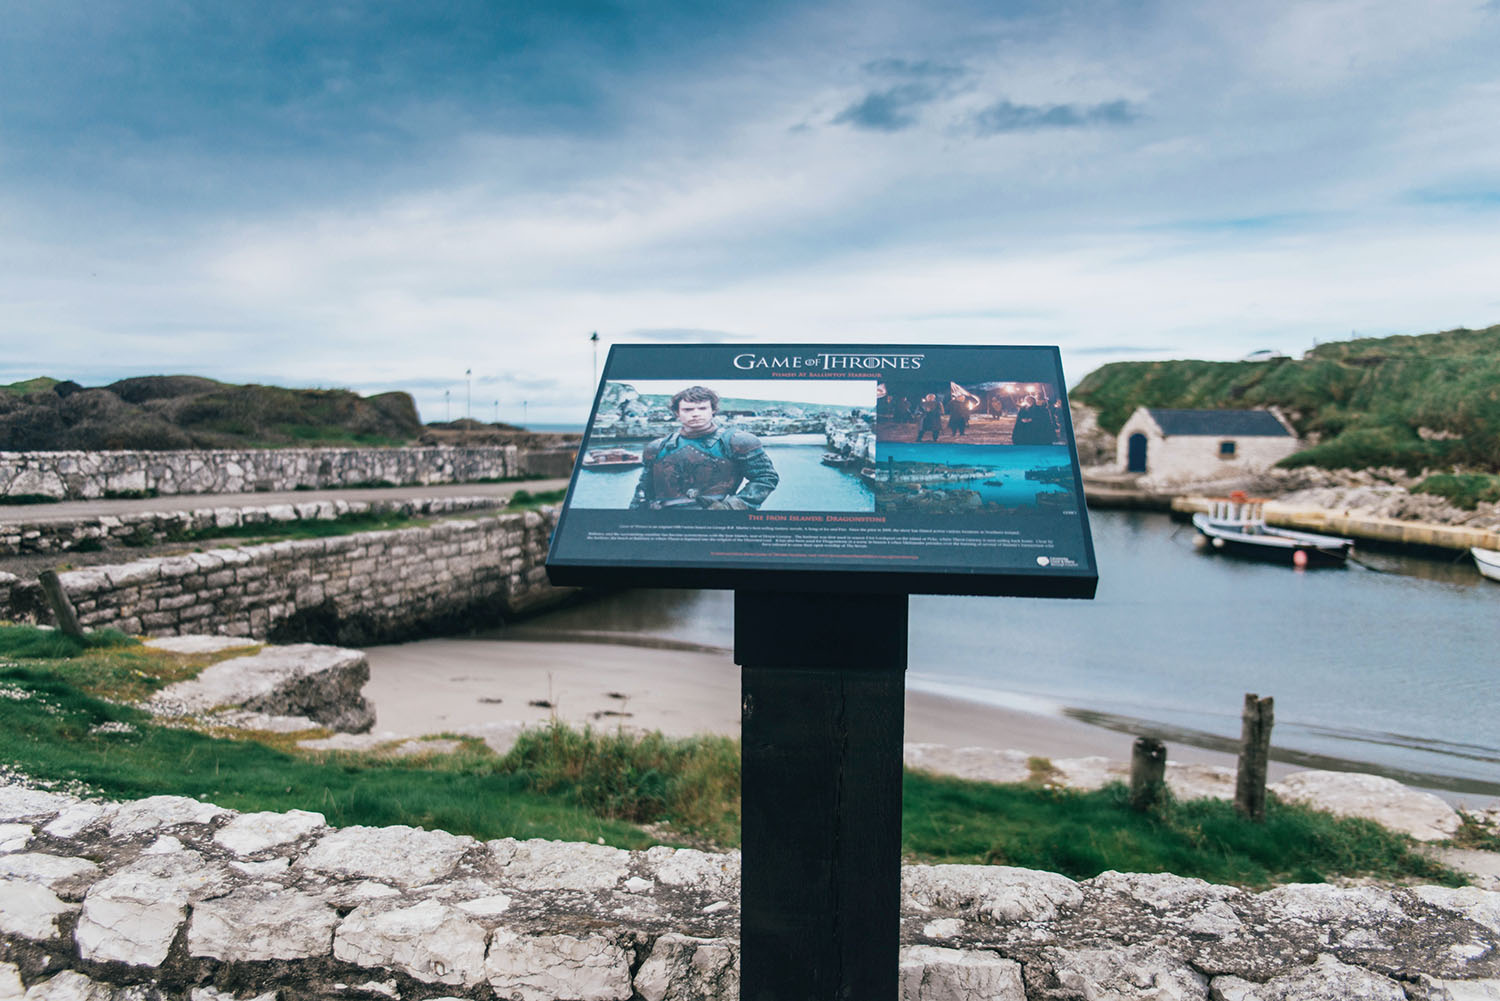 Game of Thrones Location: Ballintoy Harbour (Lordsport) The port of Pyke in the Iron Islands